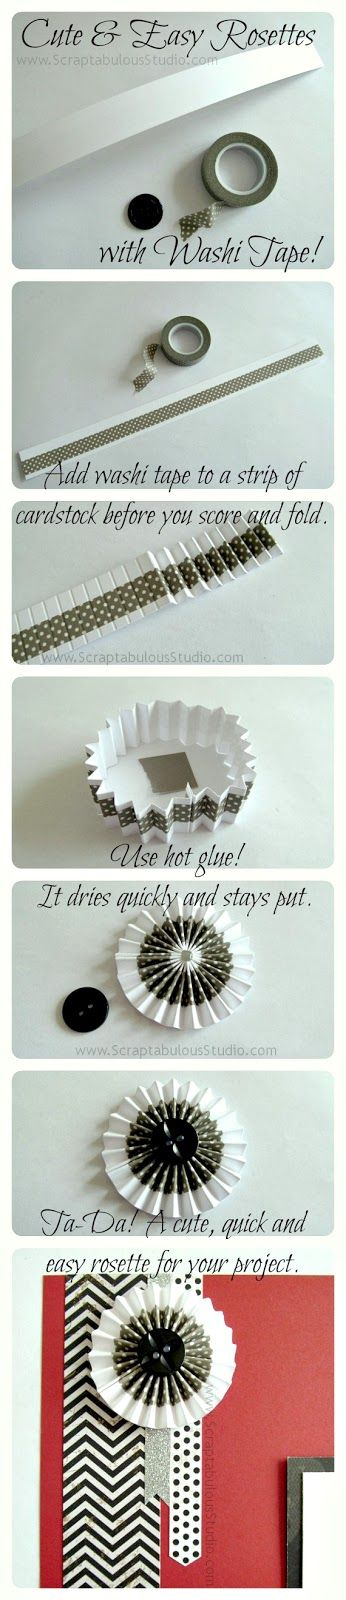 Cute washi tape rosettes for scrapbooking and paper crafting.